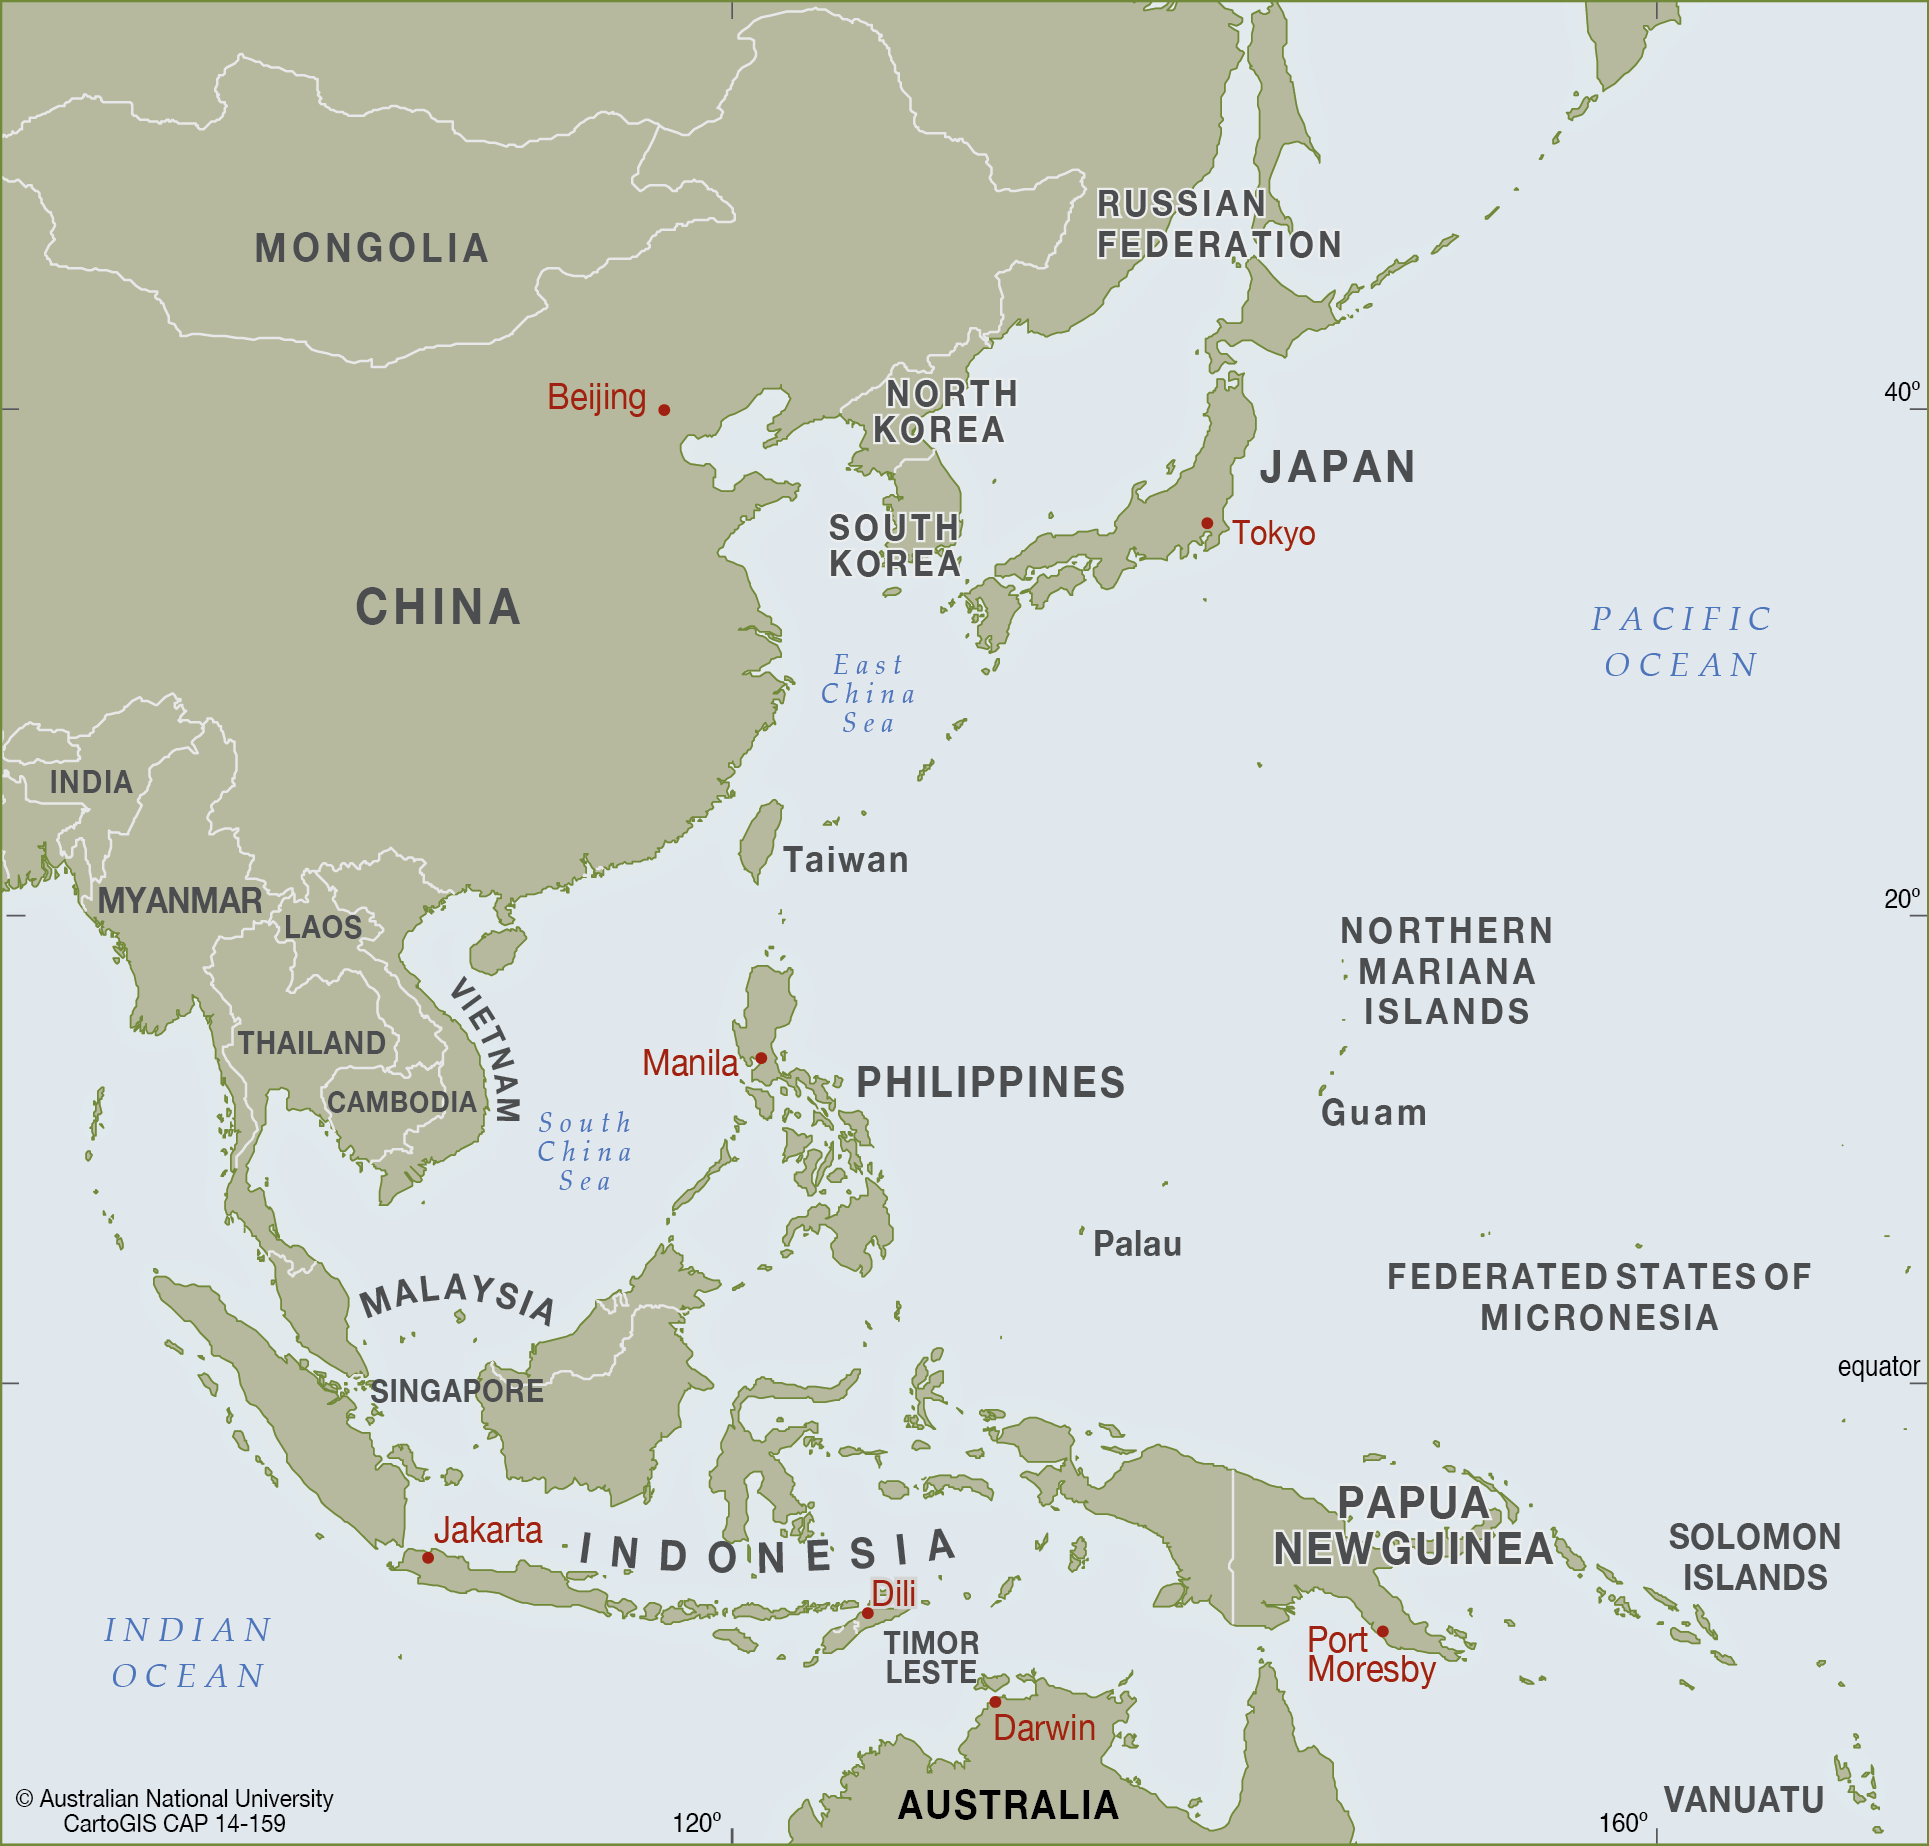 East Asia to west Pacific CartoGIS Services Maps Online ANU